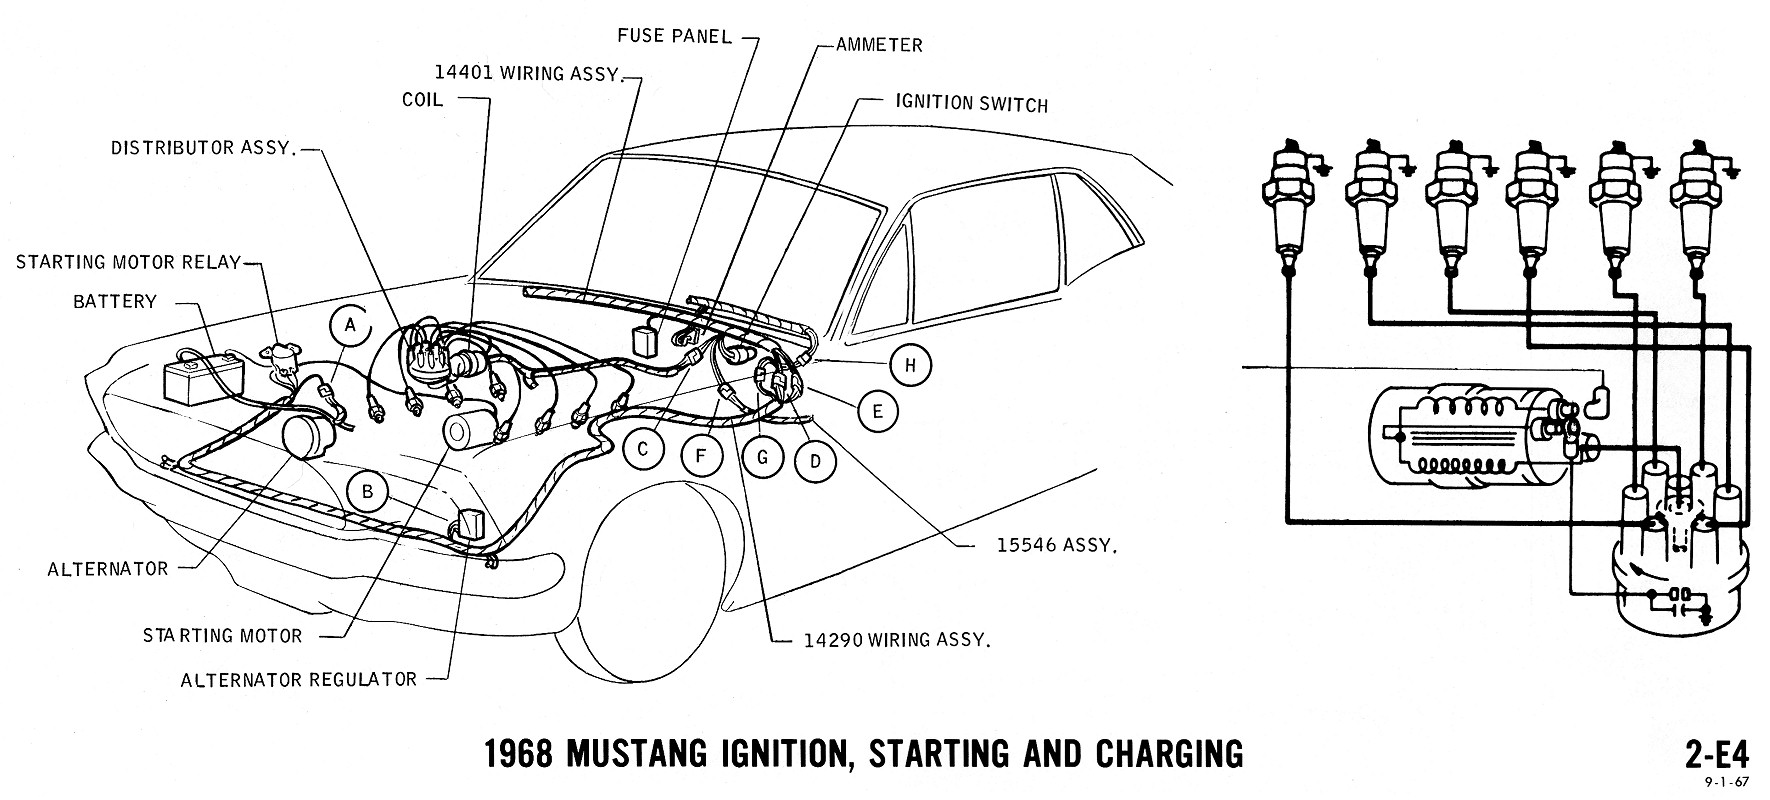 1968 Mustang Wiring Diagram Vacuum Schematics on 1965 Mustang Steering Column